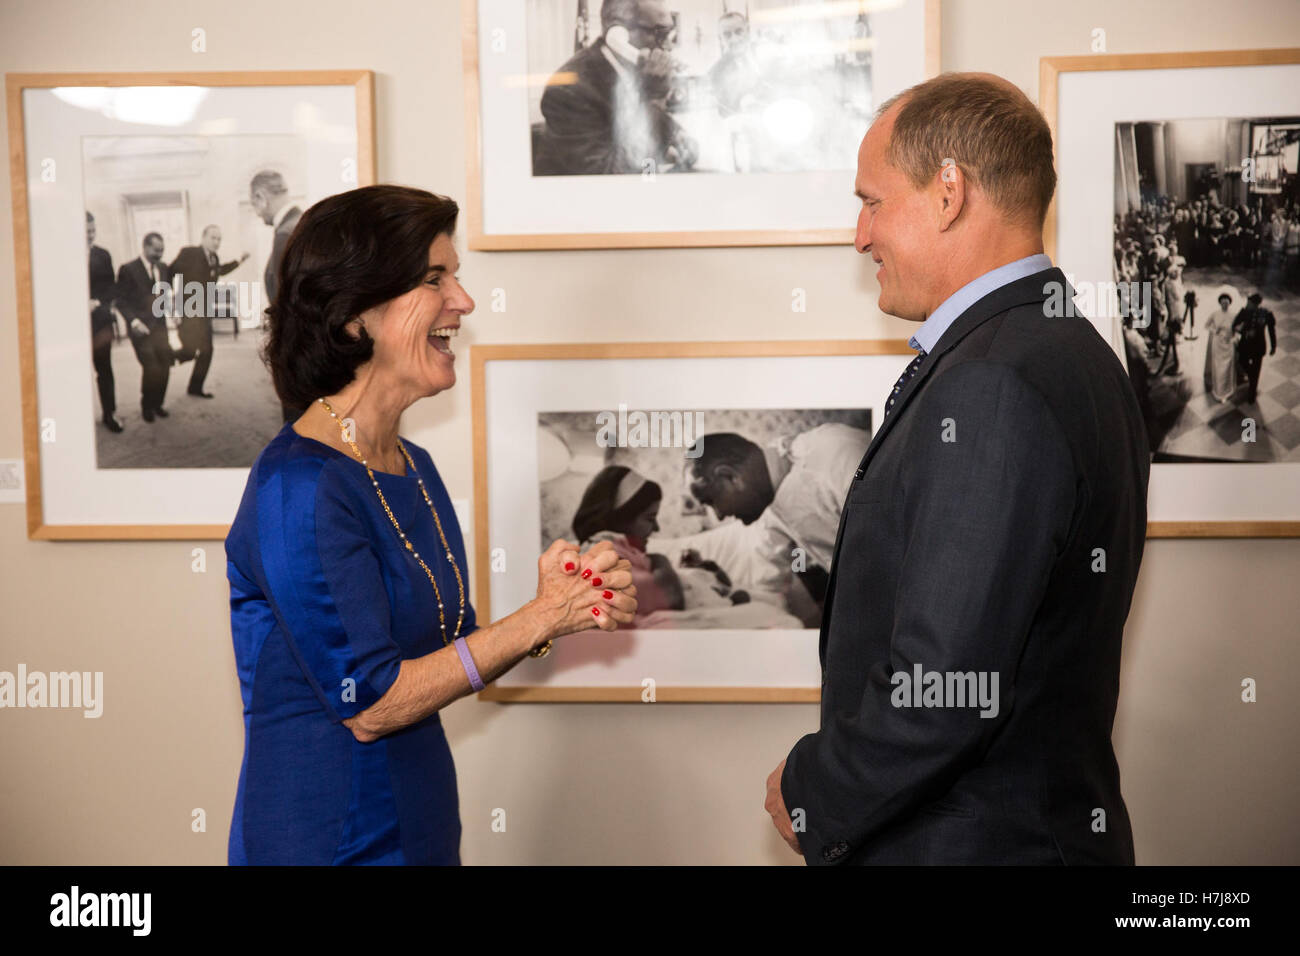 Former U.S. President Lyndon B. Johnsons daughter Luci Baines Johnson speaks with actor Woody Harrelson before a Stock Photo